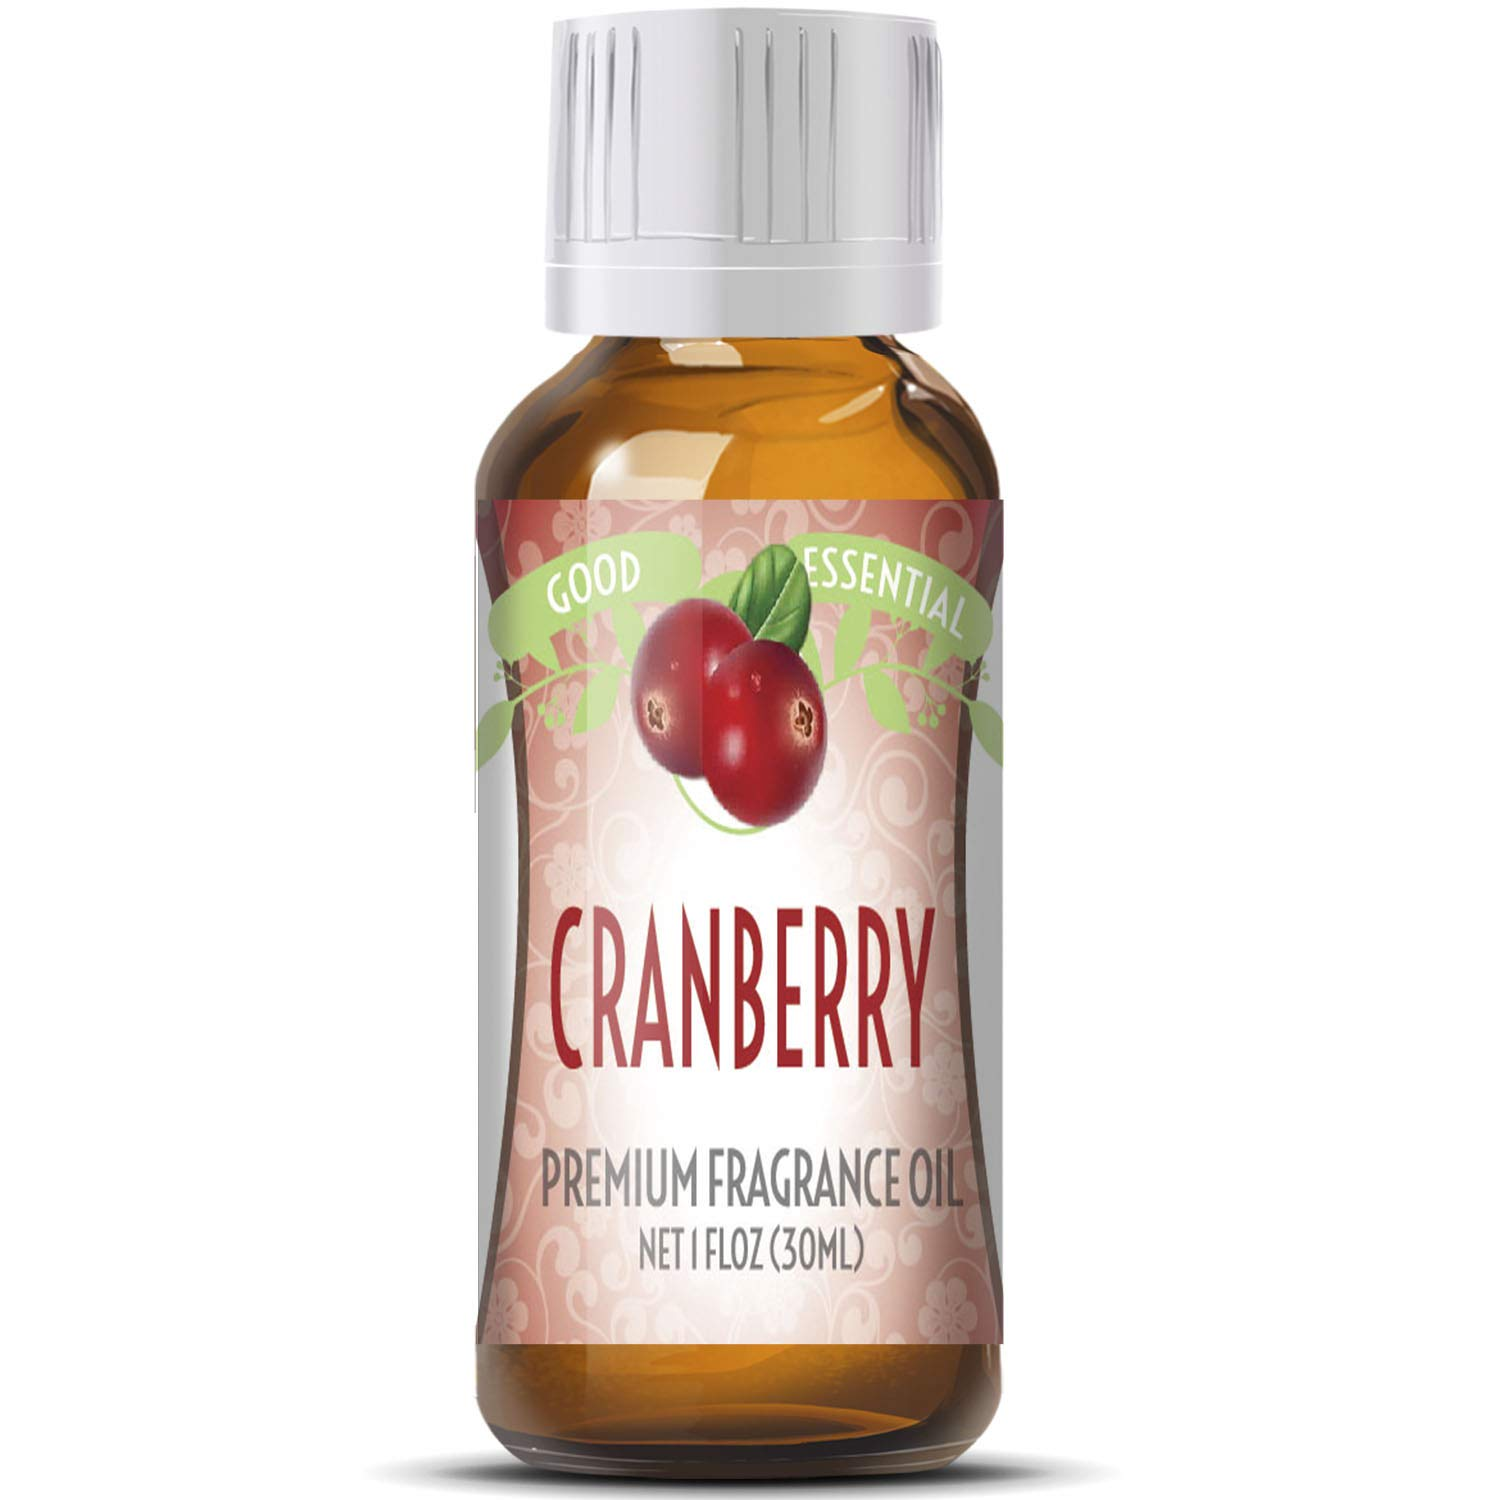 Cranberry Scented Oil by Good Essential (Huge 1oz Bottle - Premium Grade Fragrance Oil) - Perfect for Aromatherapy, Soaps, Candles, Slime, Lotions, and More!